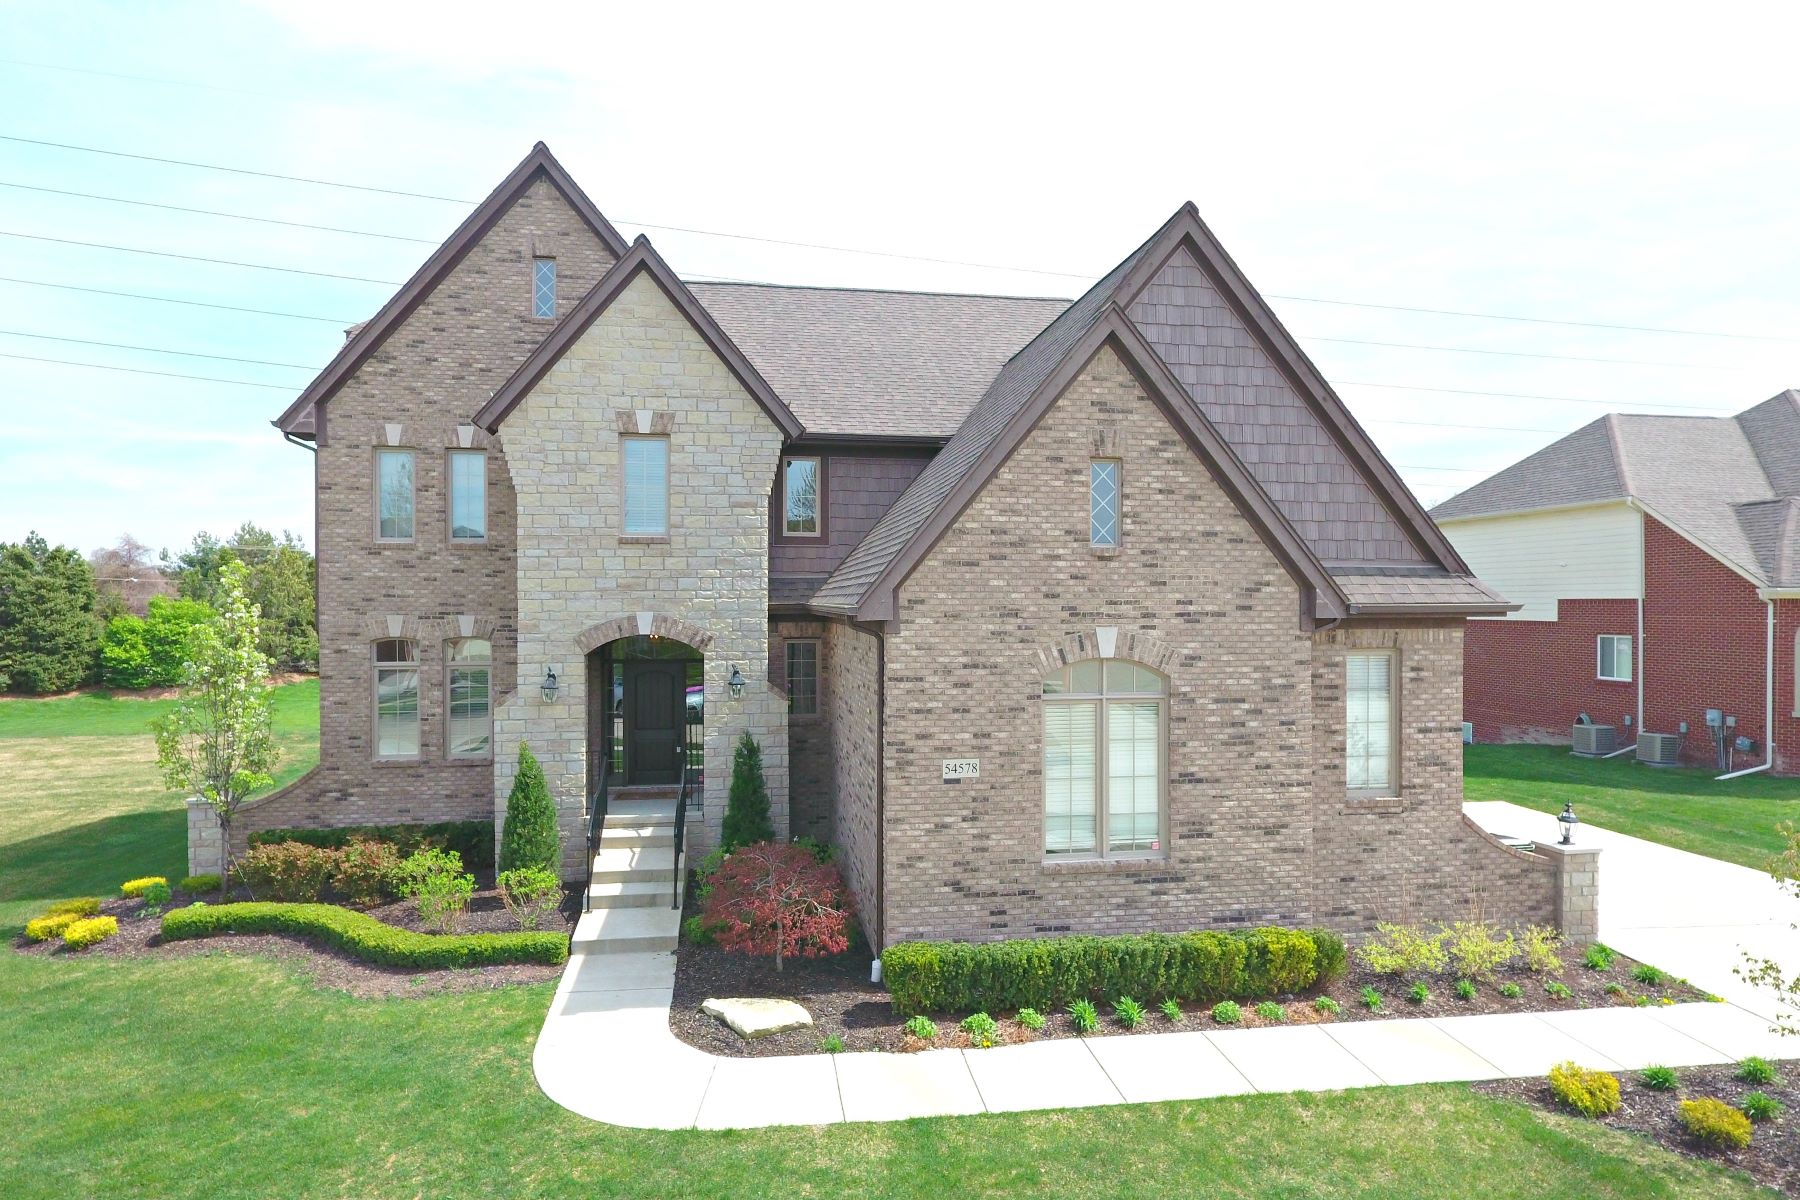 Single Family Home for Sale at Shelby Township 54578 Pelican Lane Shelby Township, Michigan, 48315 United States